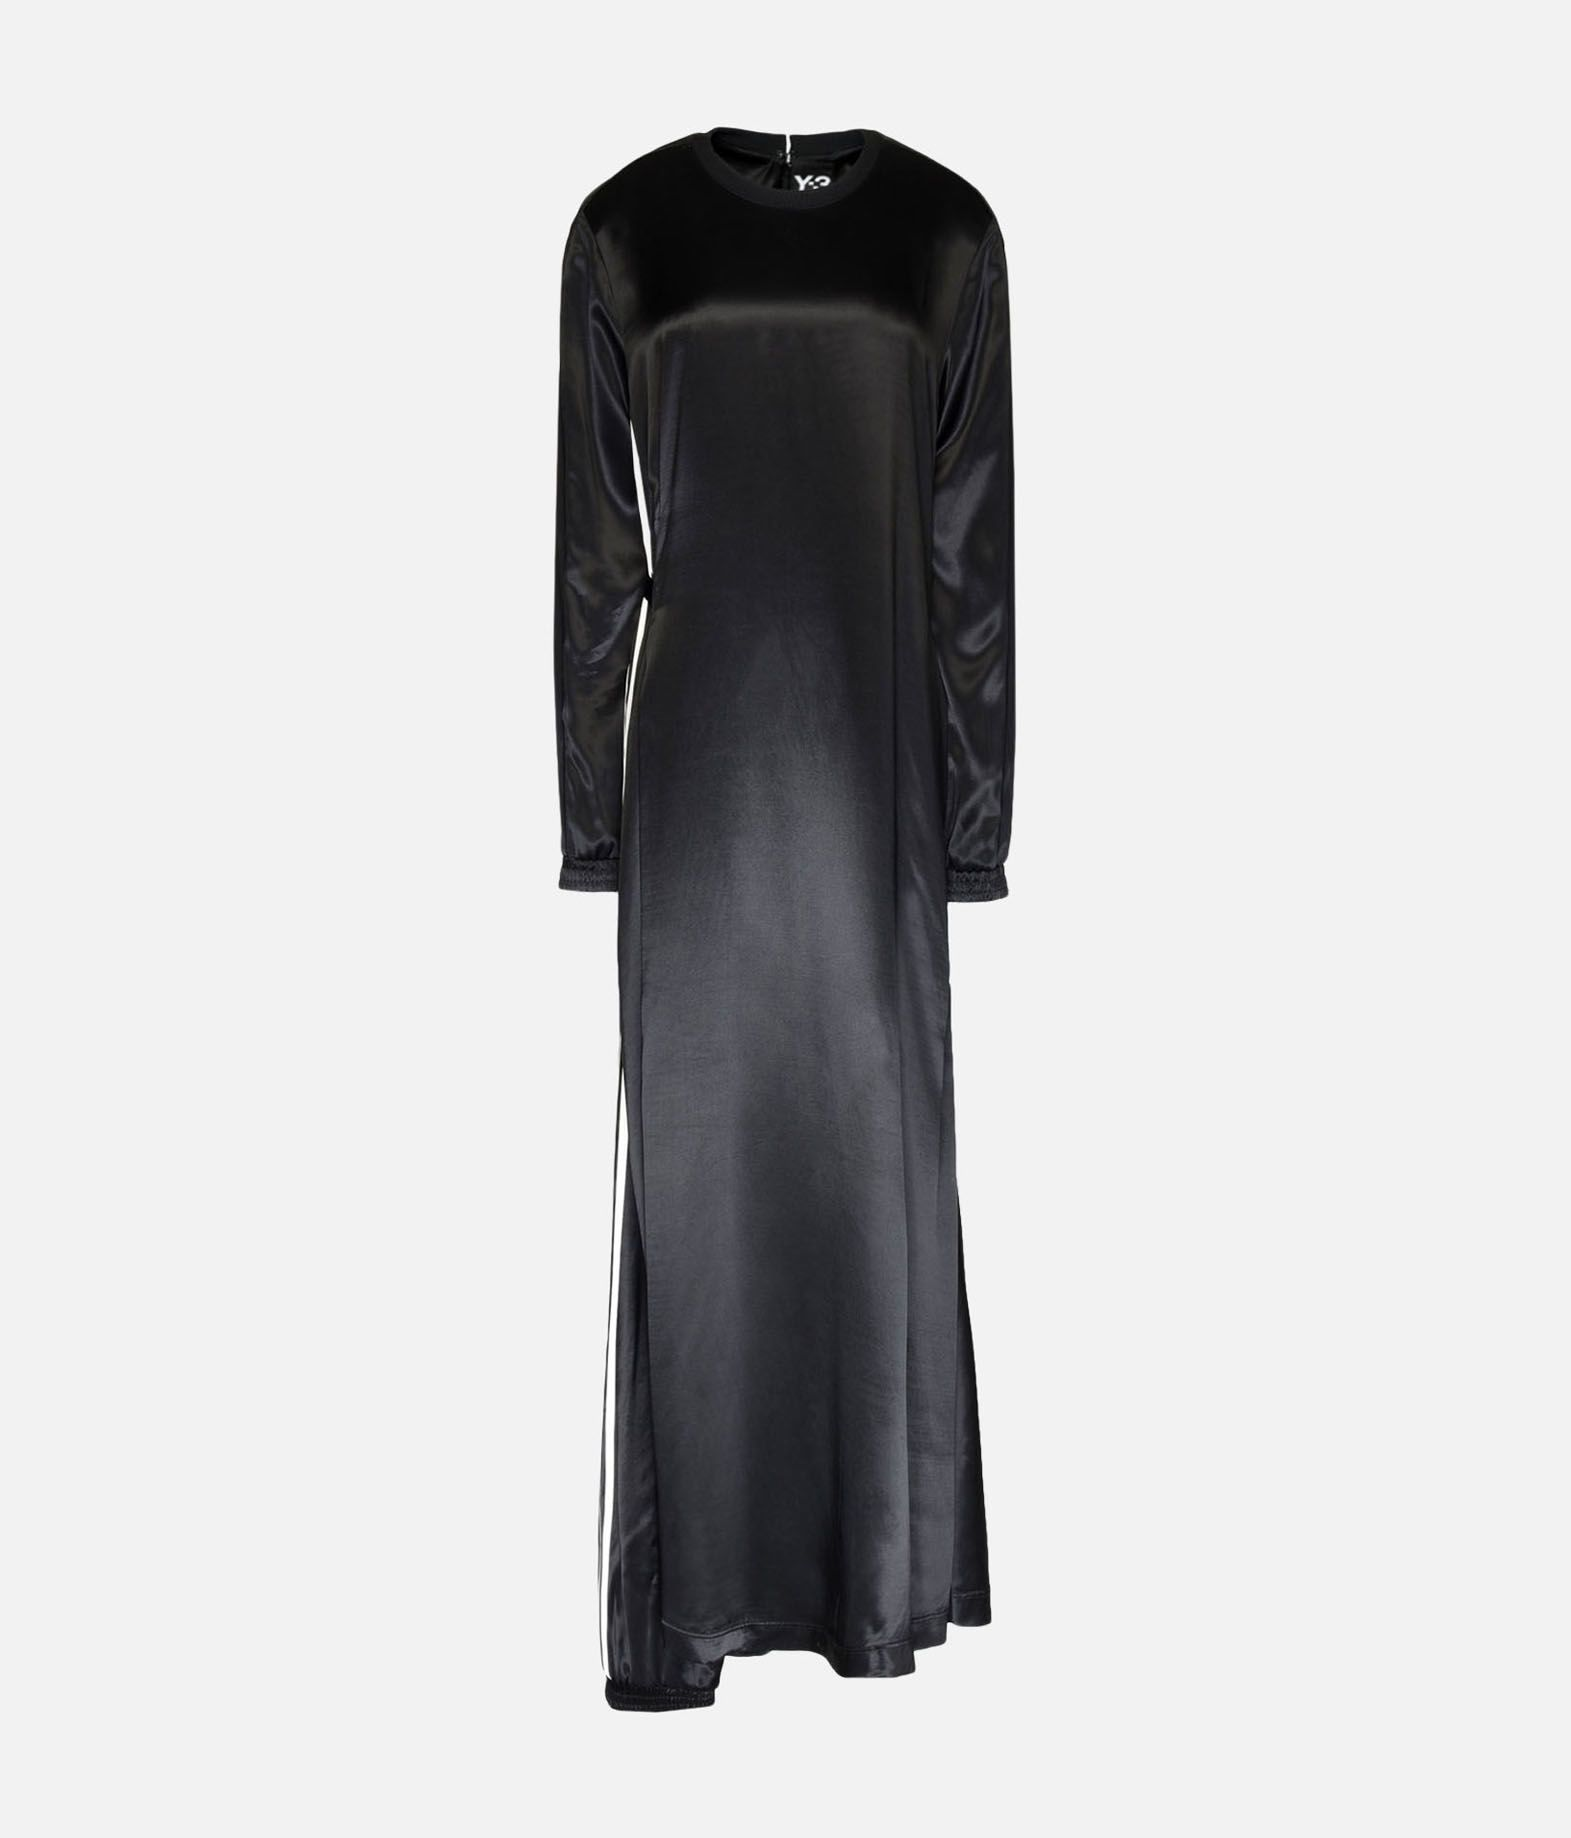 Y-3 Y-3 3-Stripes Lux Track Dress Vestito lungo Donna f